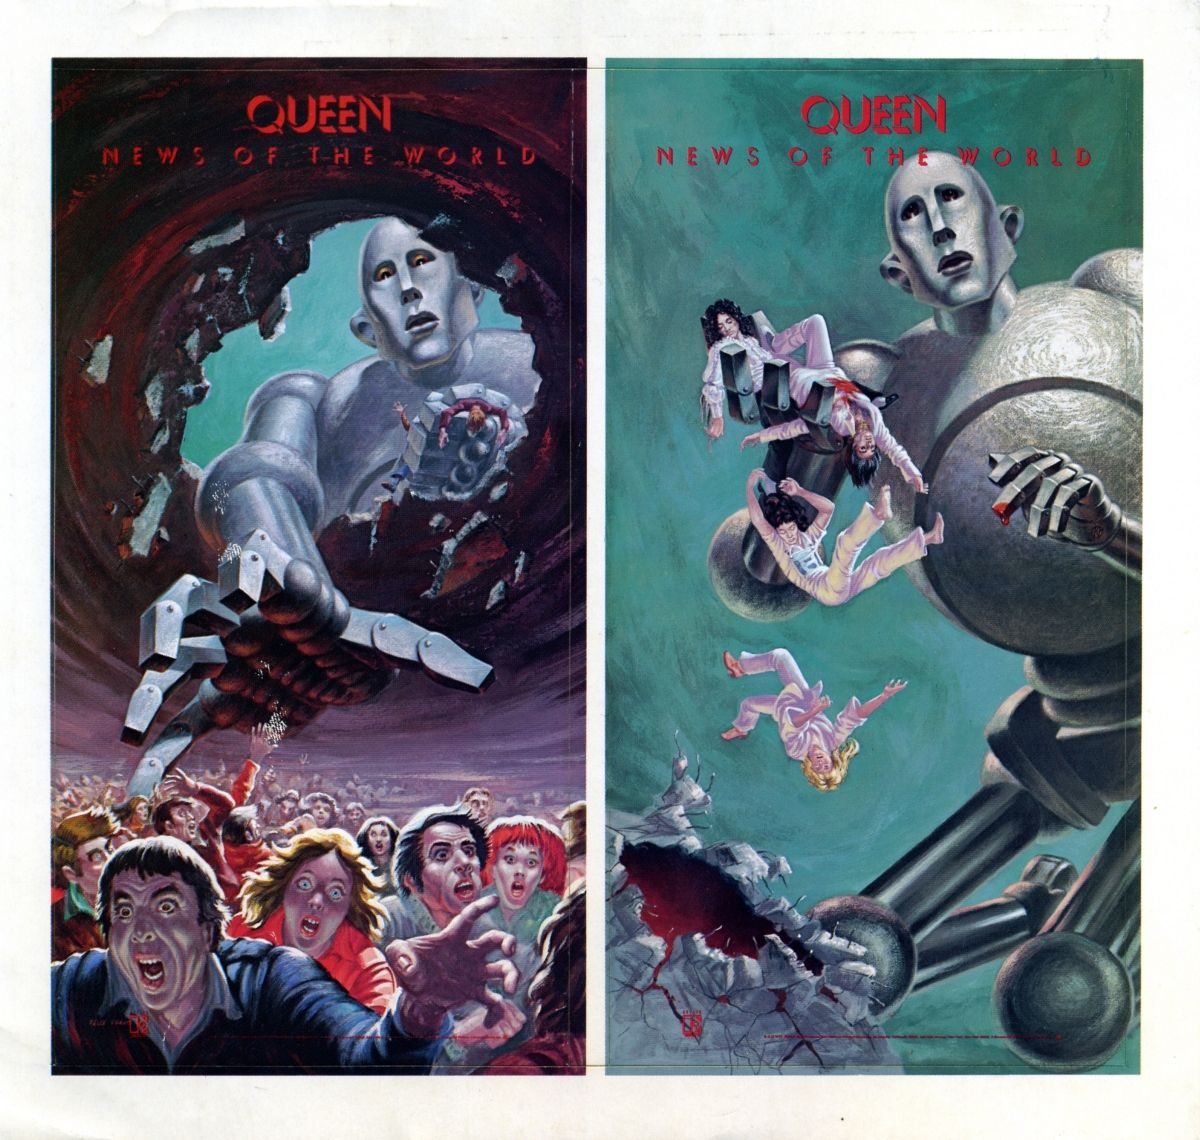 Queen - News of the World | Album Covers in 2019 | Queen albums